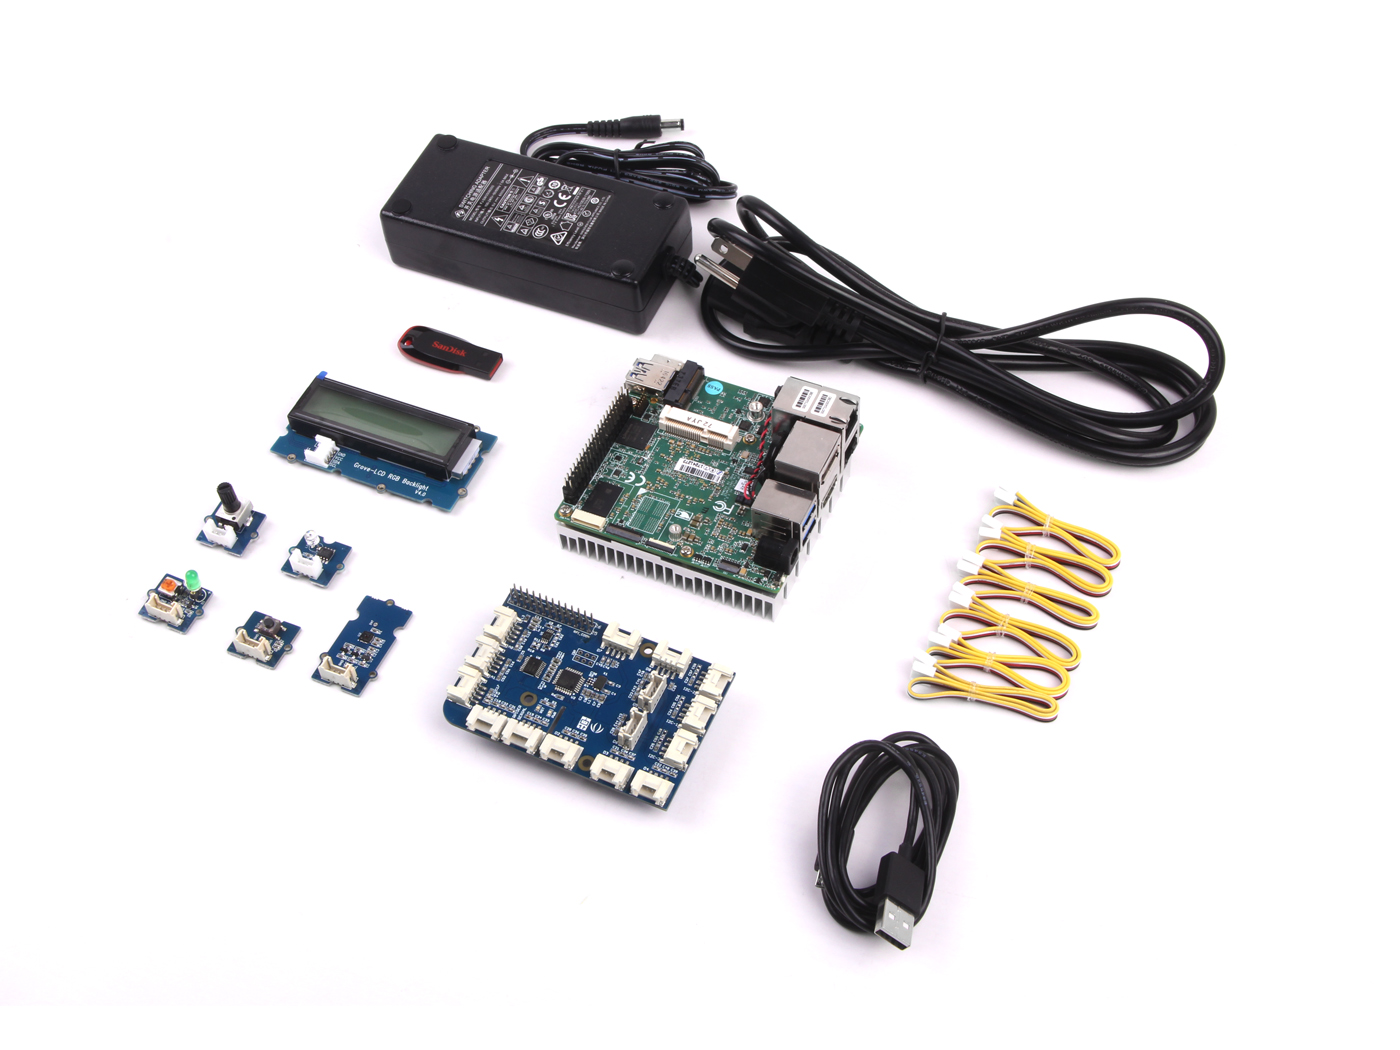 UP² Grove IoT Development Kit